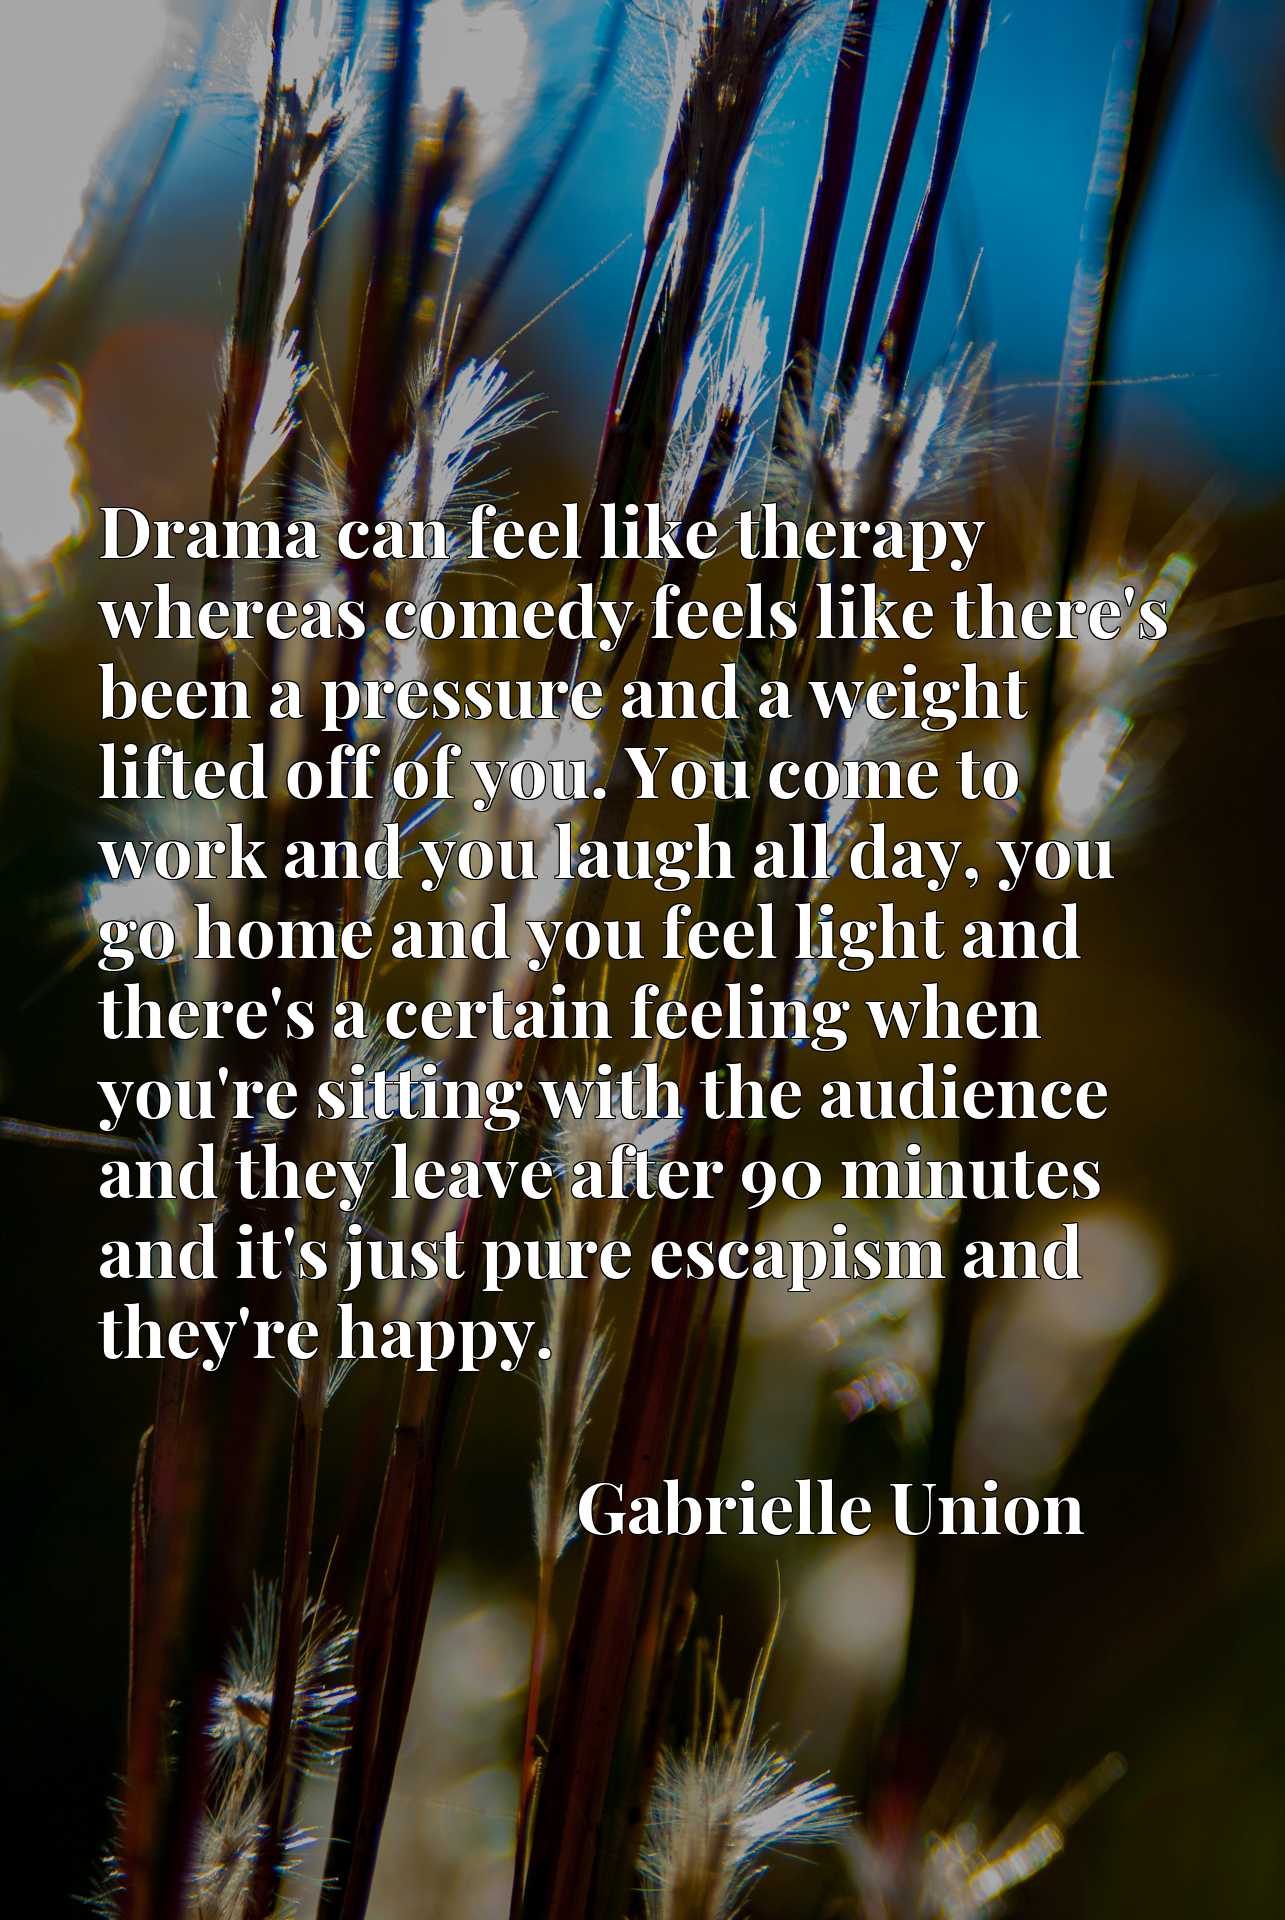 Drama can feel like therapy whereas comedy feels like there's been a pressure and a weight lifted off of you. You come to work and you laugh all day, you go home and you feel light and there's a certain feeling when you're sitting with the audience and they leave after 90 minutes and it's just pure escapism and they're happy.